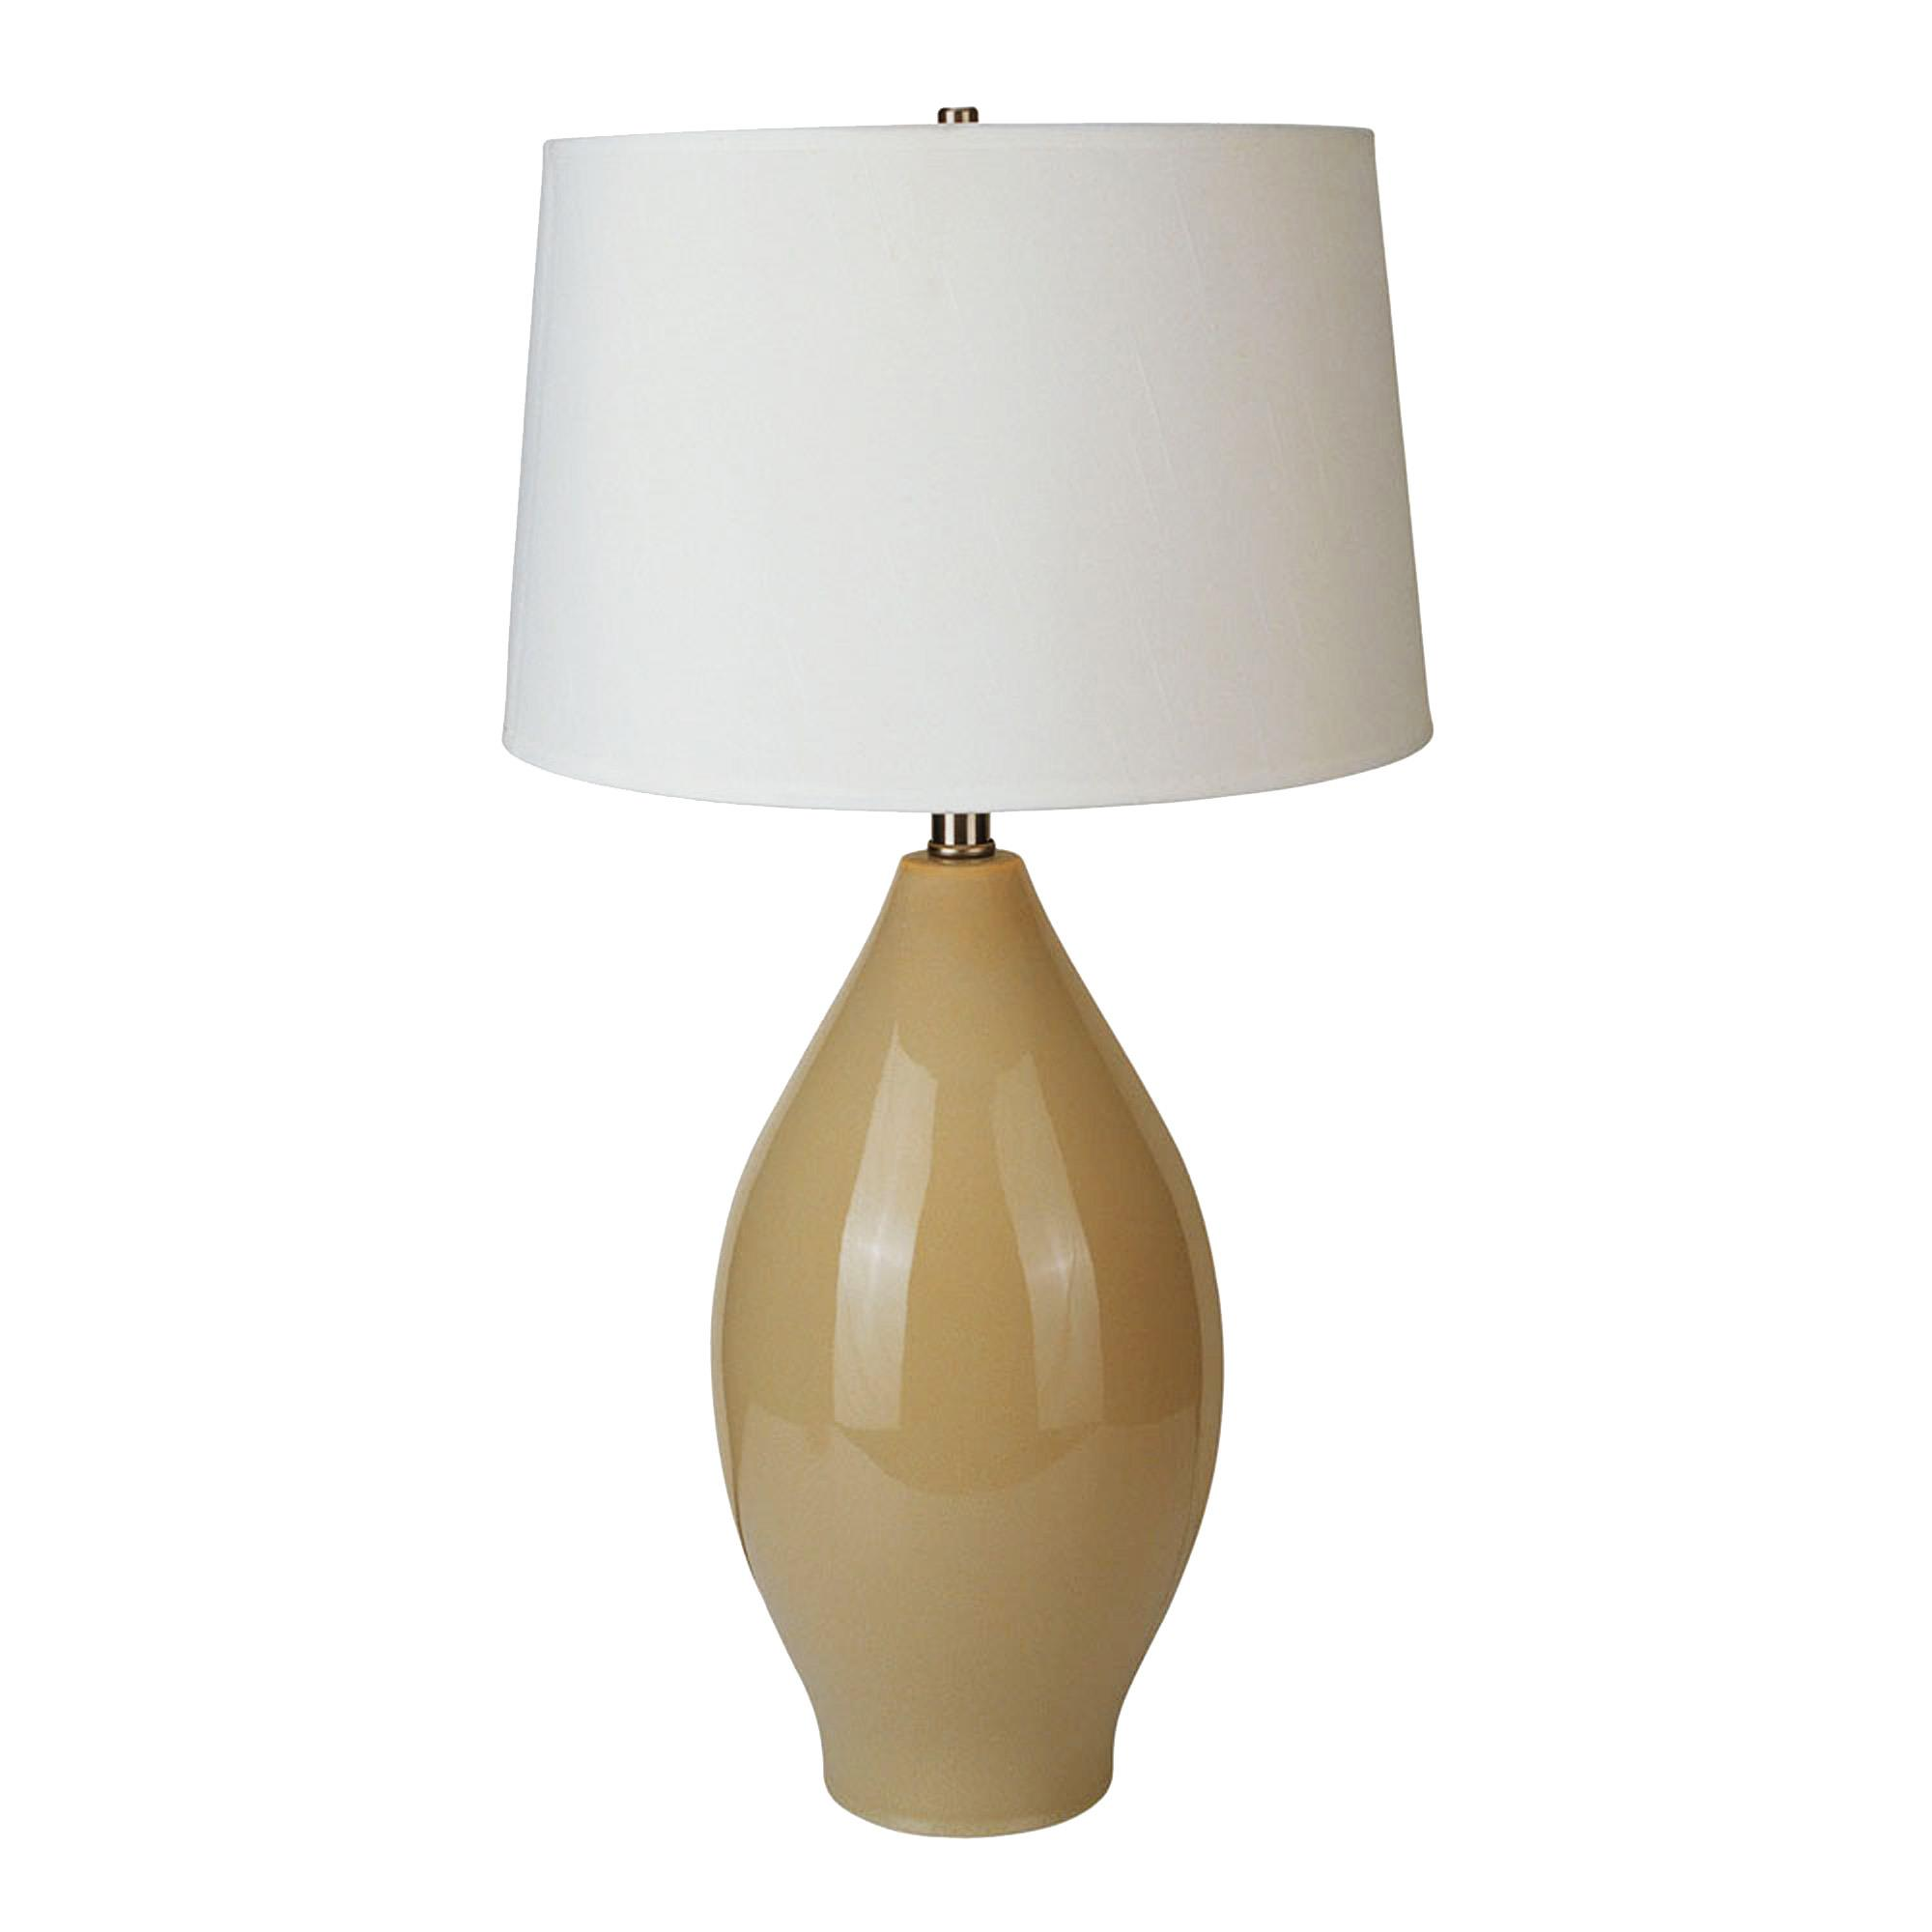 28 Ceramic Table Lamp